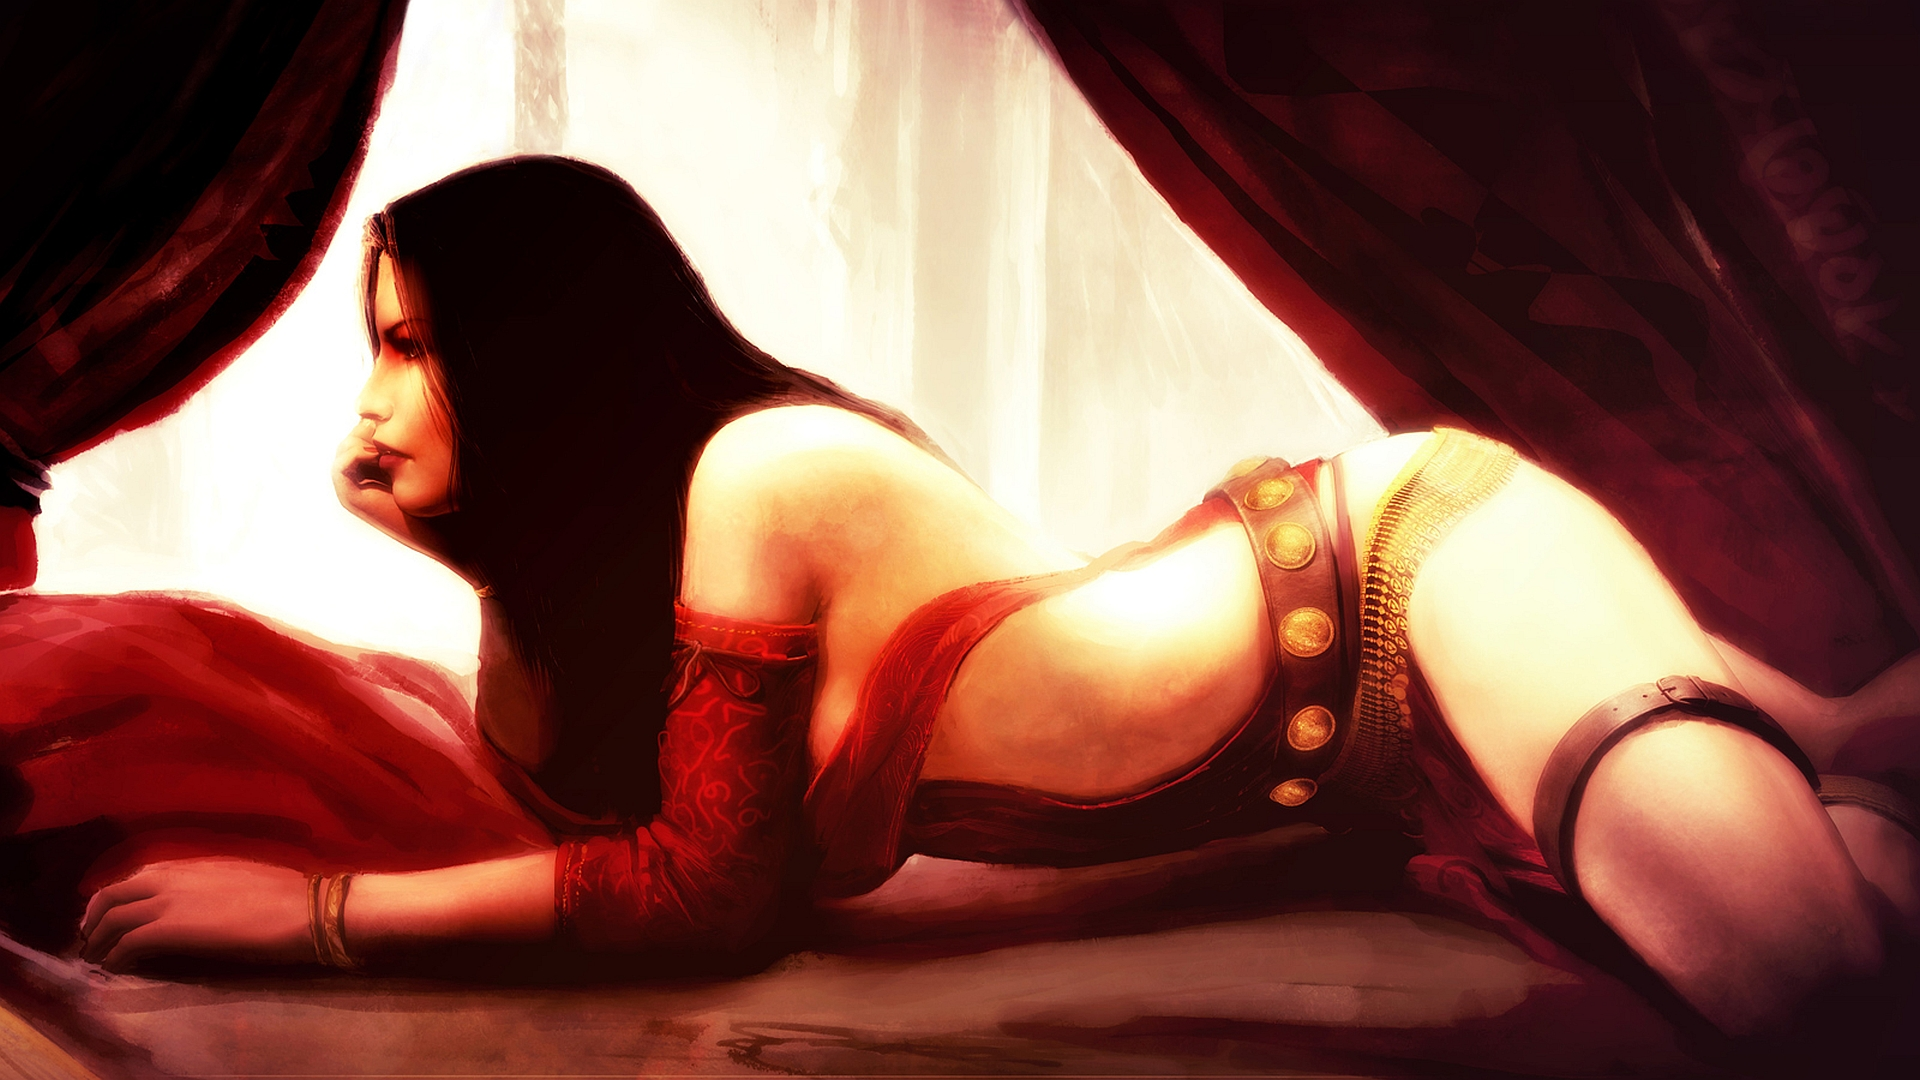 Prince of persia game queen nude image anime tube